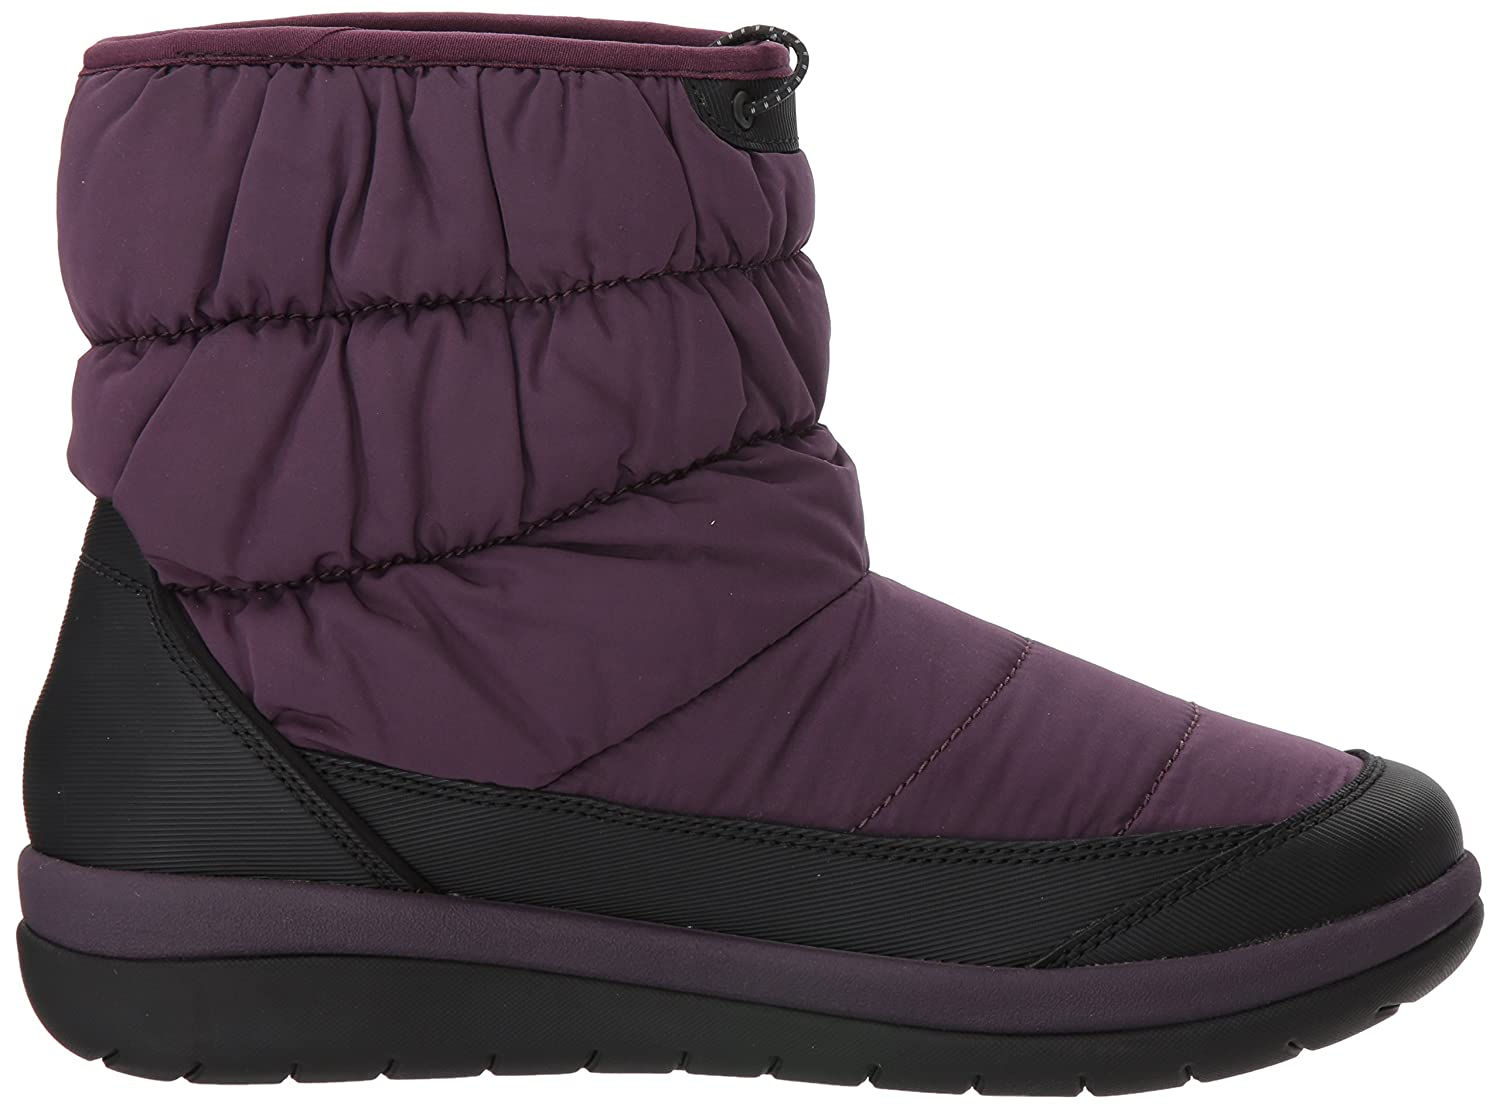 Clarks Women's Cabrini Bay Snow Boot B01N2Z1ZHE Snow Boots Boots Boots 0bae7e